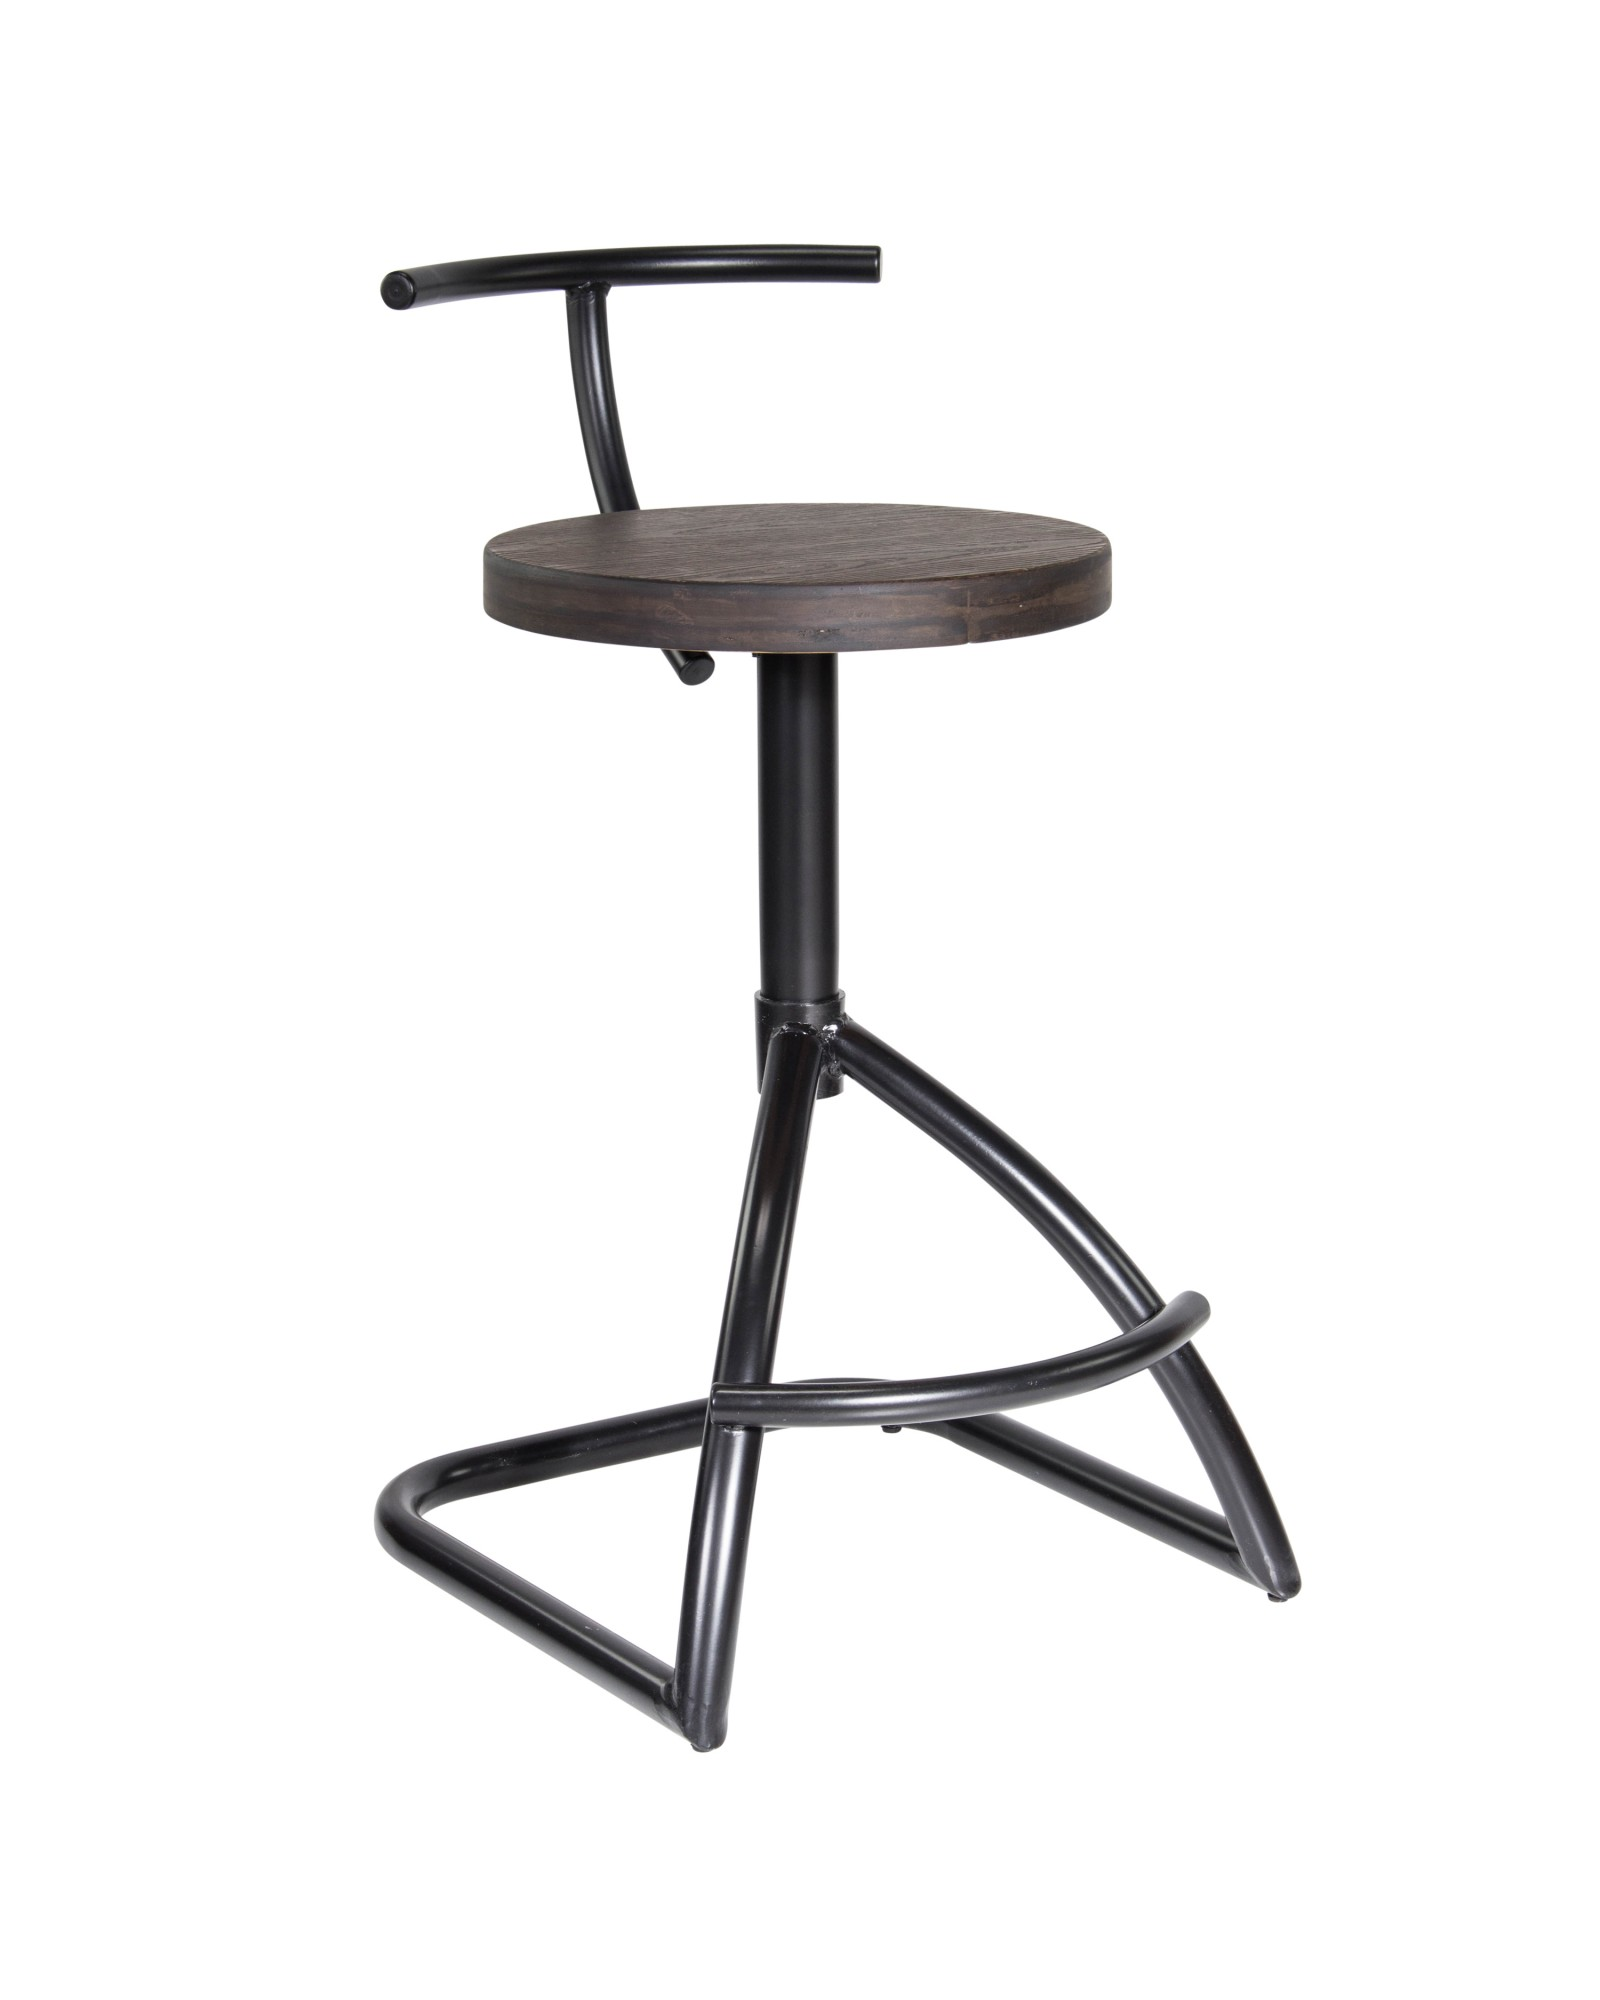 Mantis Industrial Counter Stool in Black Metal with Espresso Wood Seat